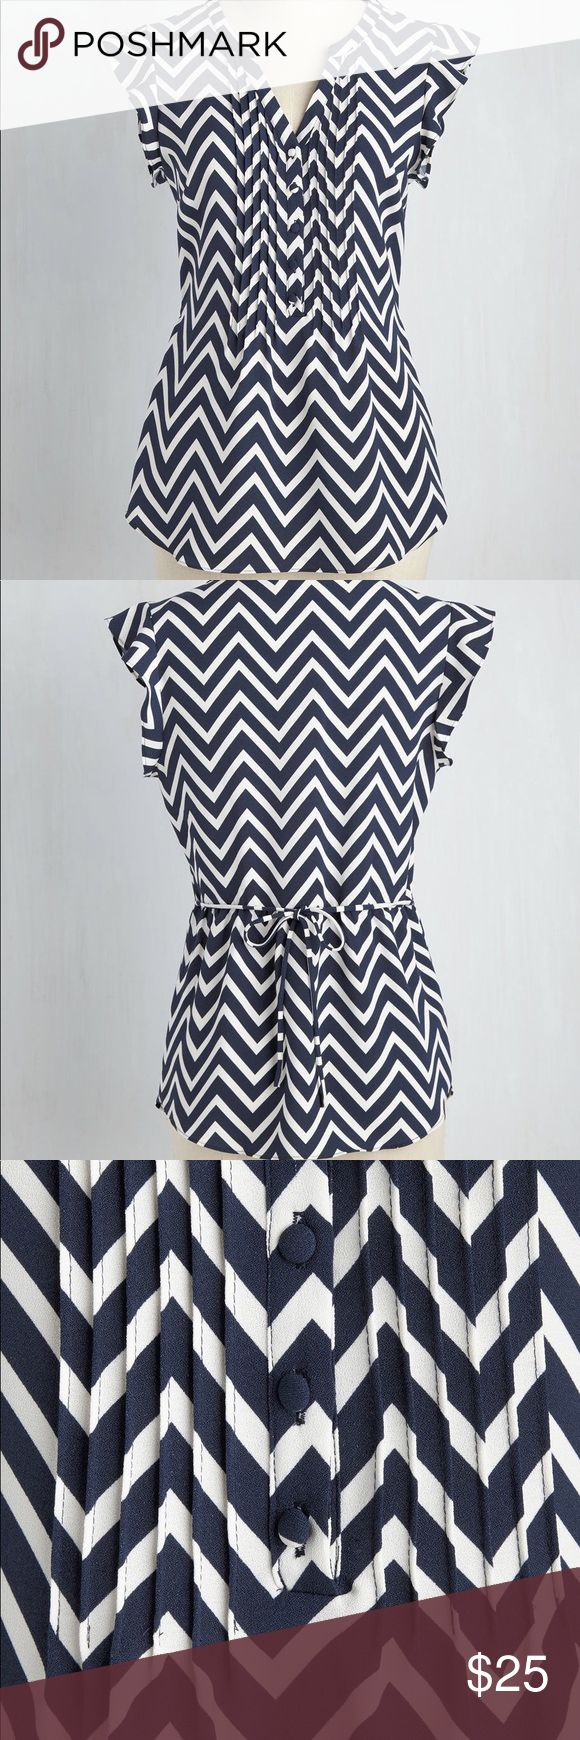 Expert in Your Zeal ModCloth ButtonUp Chevron Top ModCloth white and navy chevron top with nice ruffles on the front, amazing for the office or for getting together for brunch with friends! Looks great by itself or layered underneath a cardigan or sweater! Perfect condition, only worn 2 or 3 times. Modcloth Tops Blouses